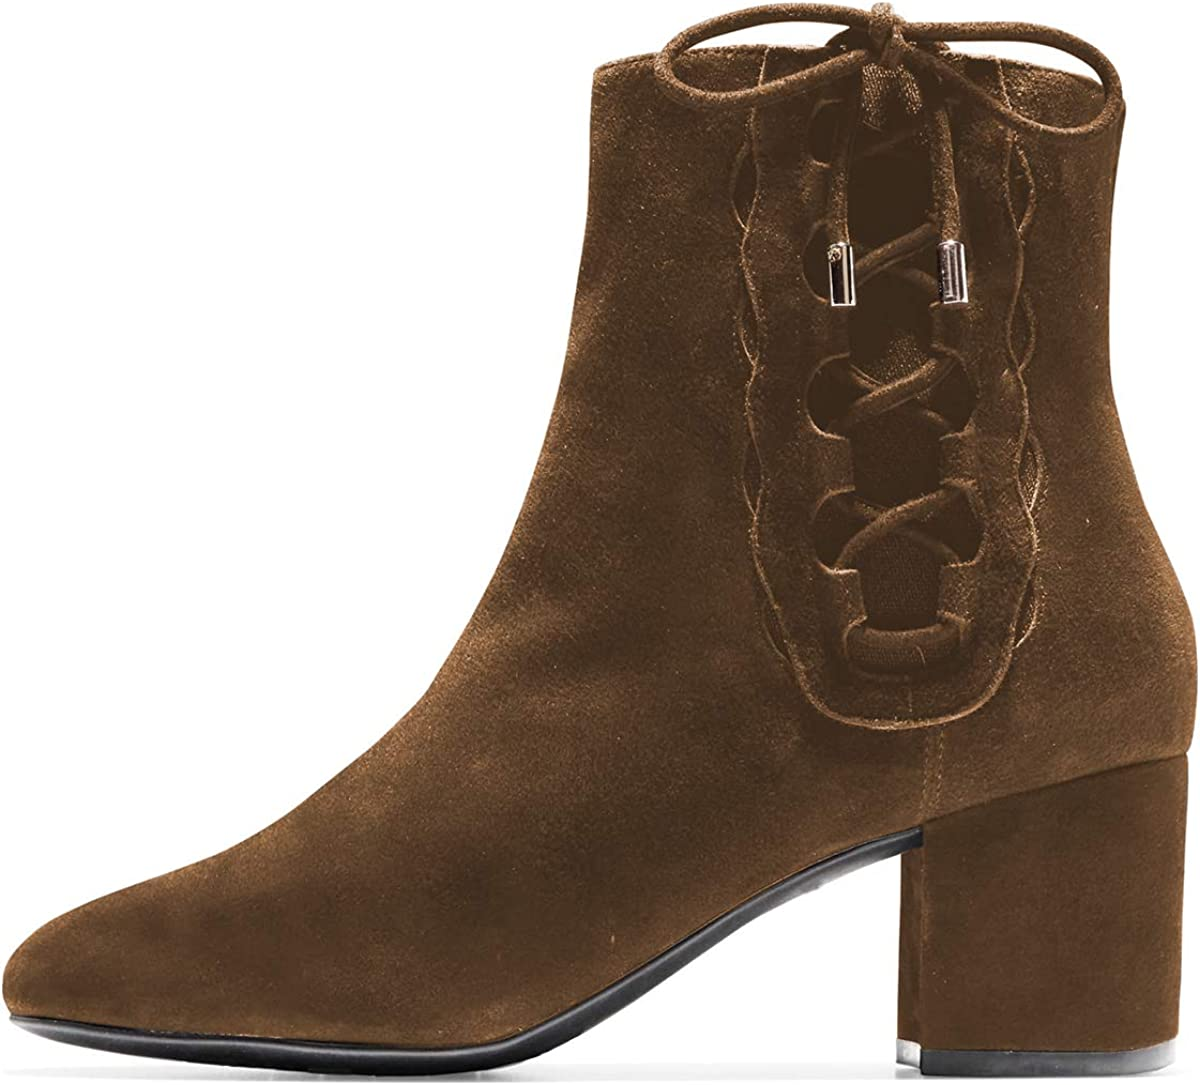 YDN Women Round Toe Block Ankle Boots Low Heel Booties Faux Suede Side Zips Shoes